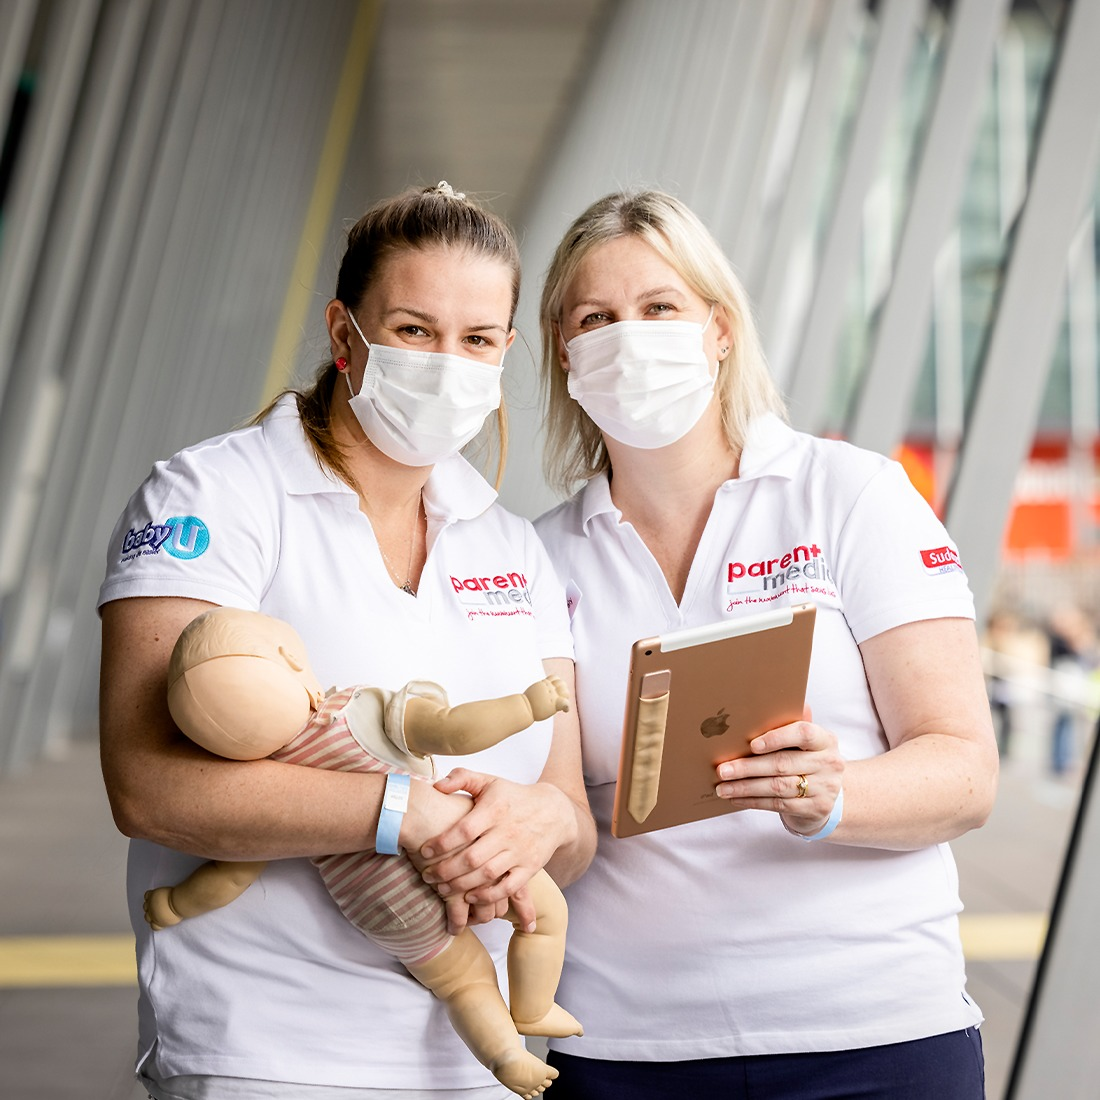 Two woman from parentmedic, holding a CPR doll and a clipboard